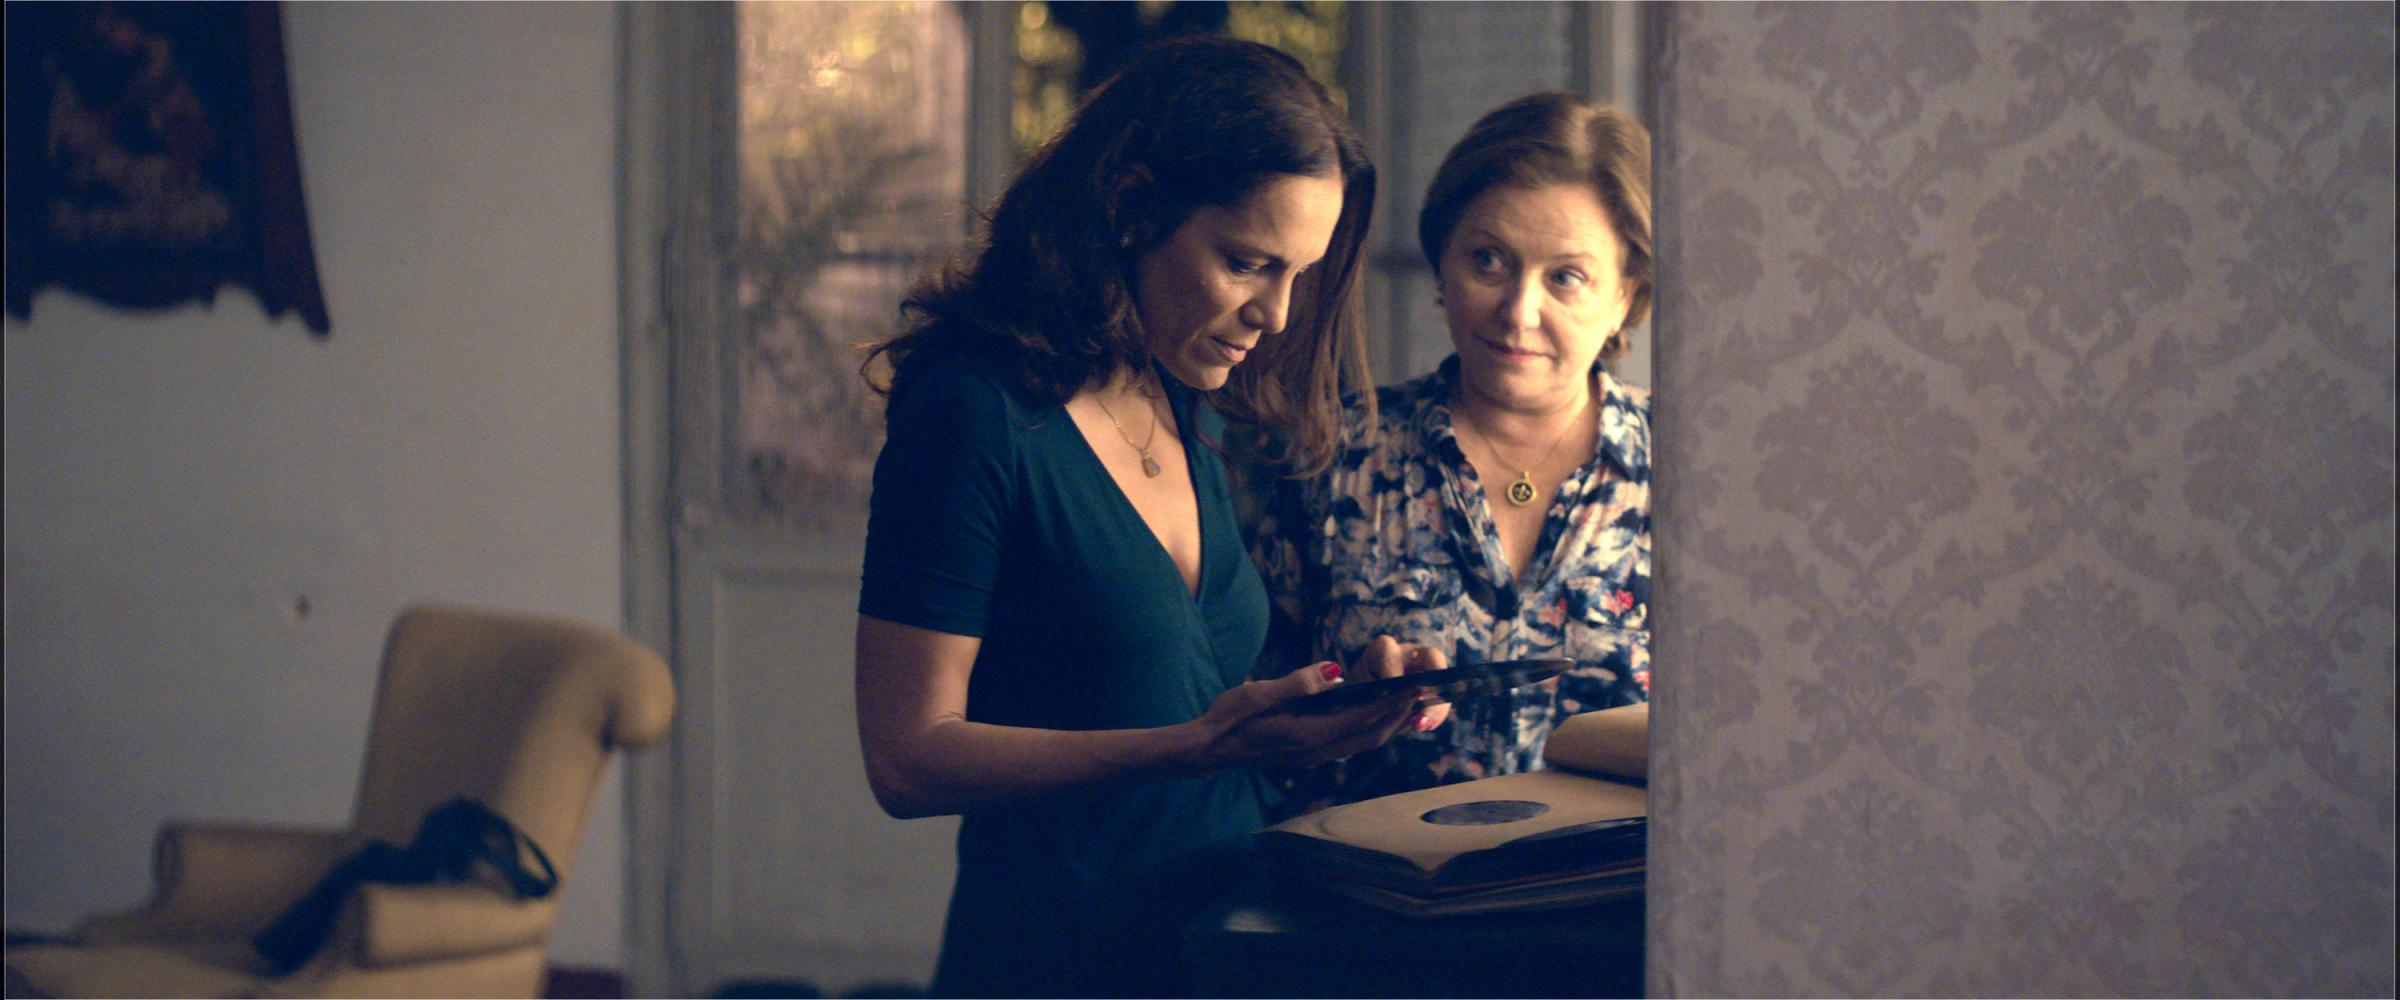 The Heiresses is the latest offering from Theatr Mwldan Film Society